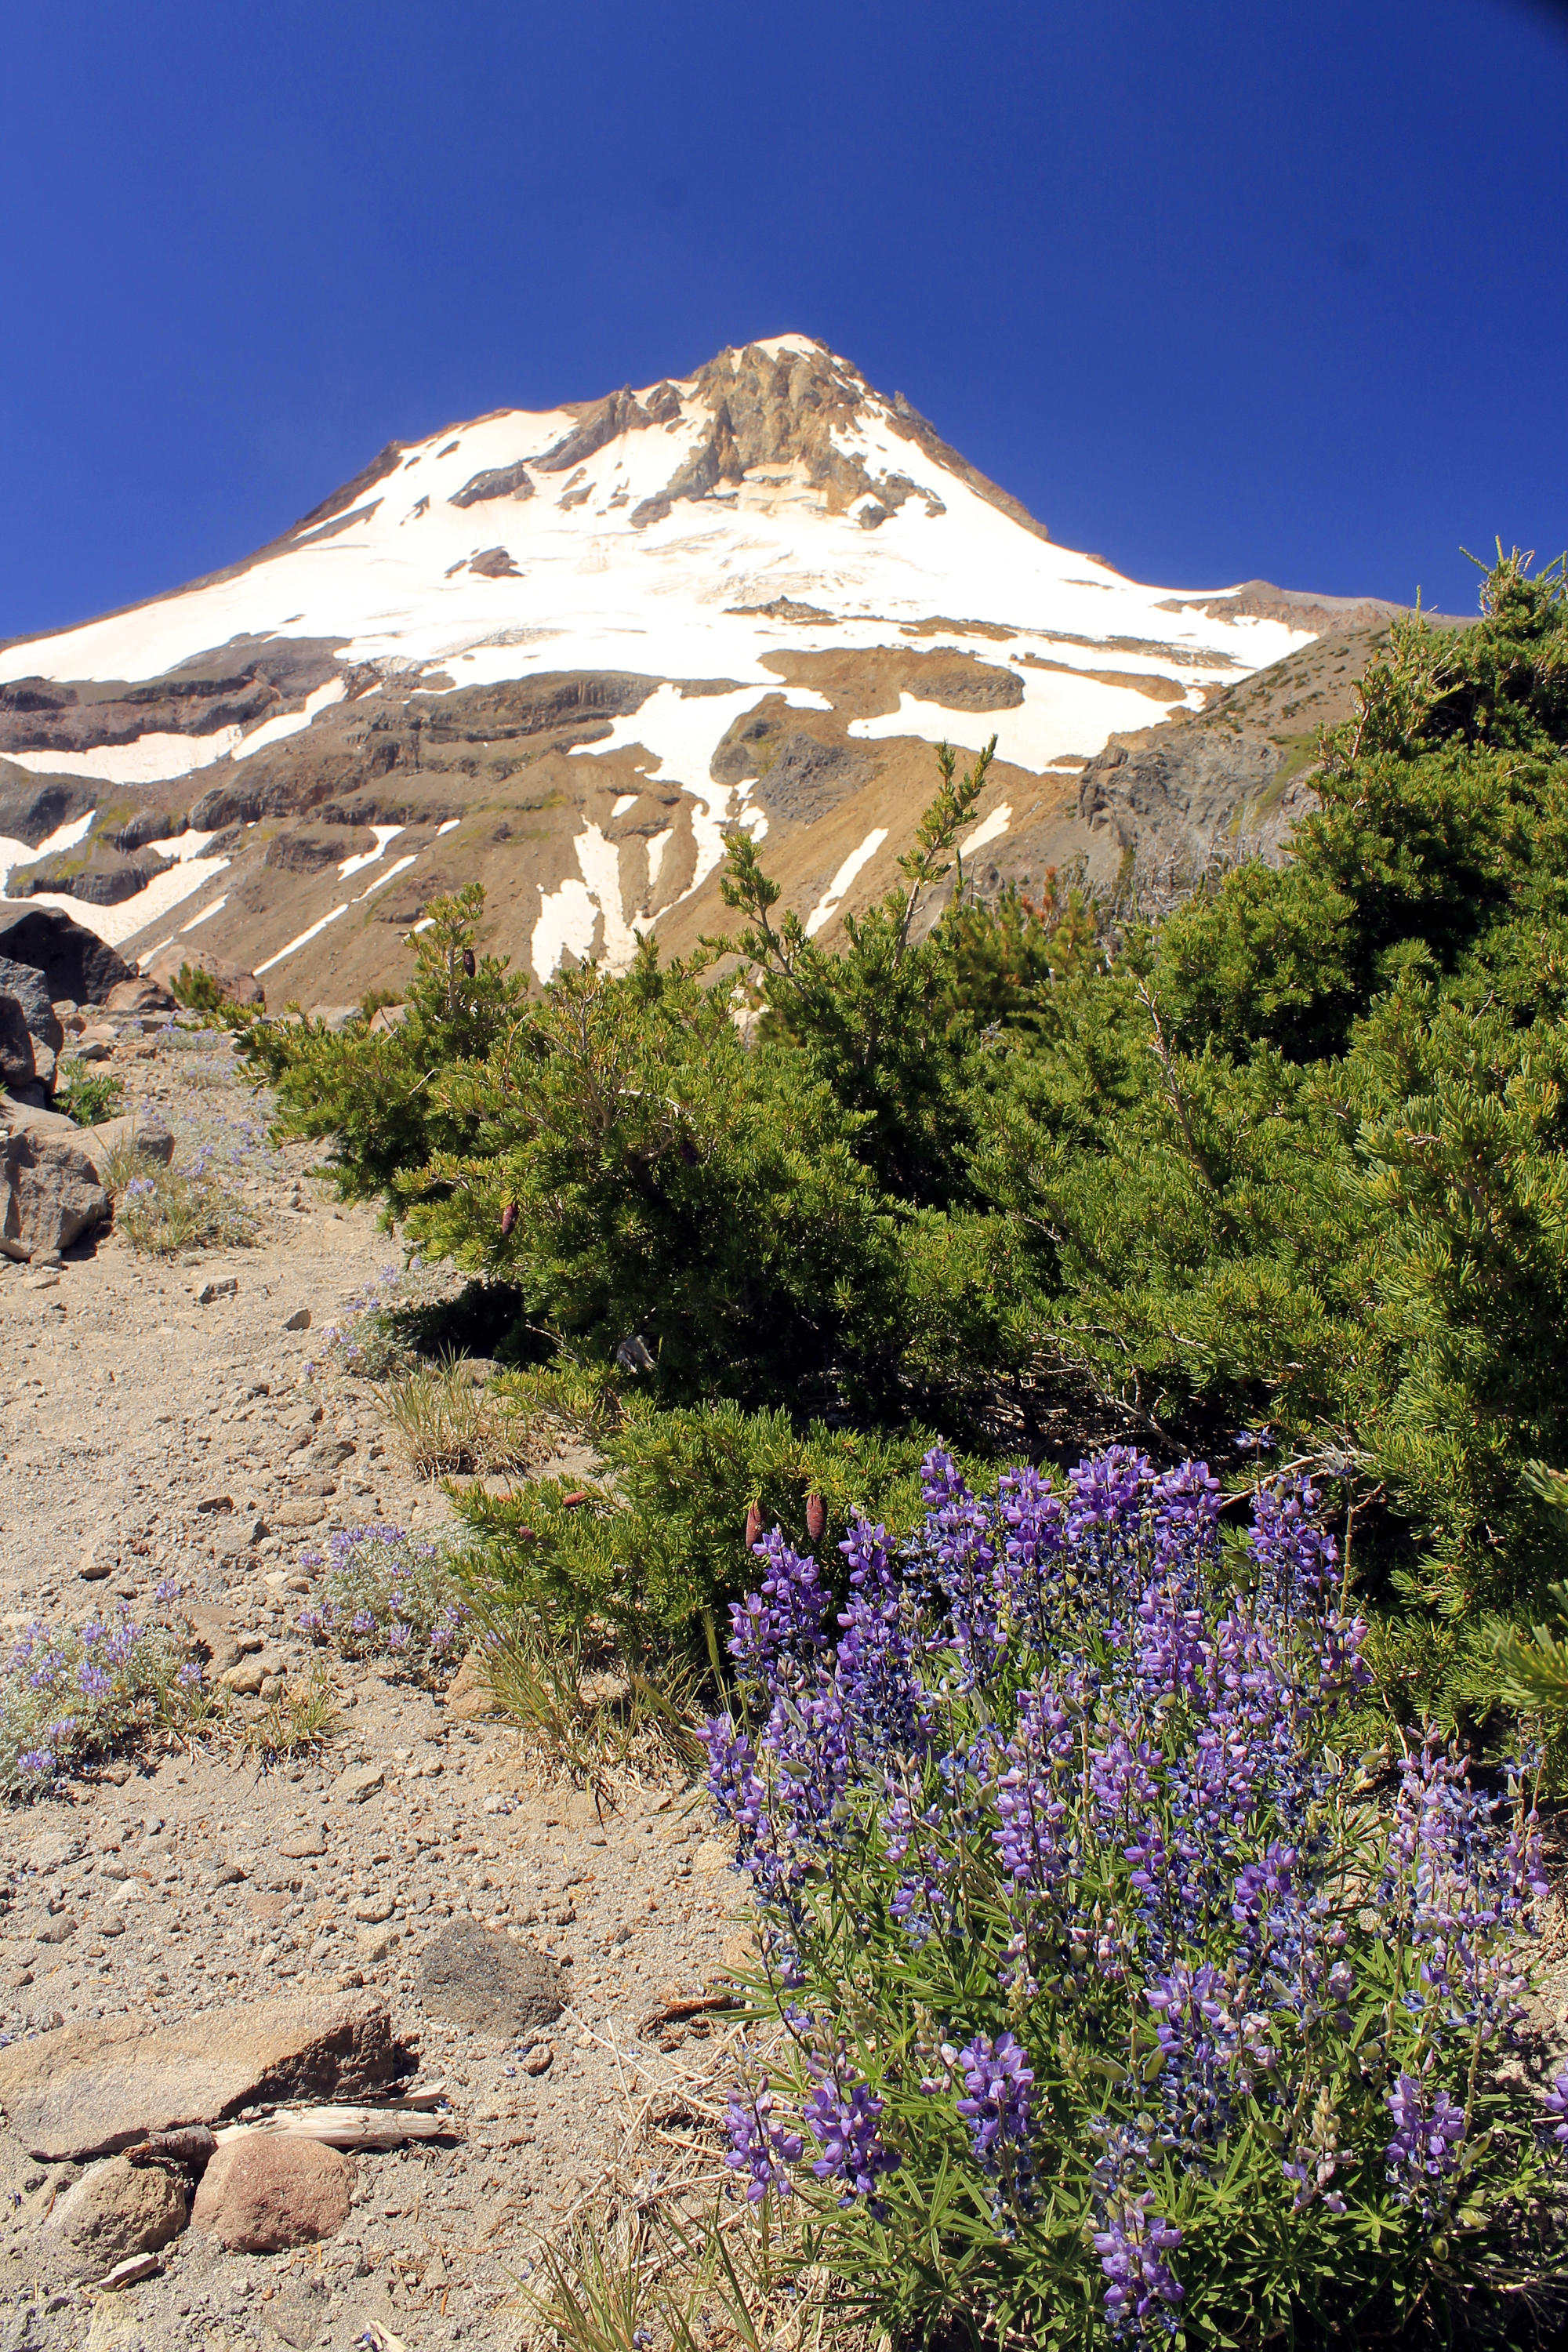 Lupine lines the Timberline Trail on the slopes of Gnarl Ridge. This is one of the most spectacular spots on Mount Hood, and late July is the ideal time to do this hike.